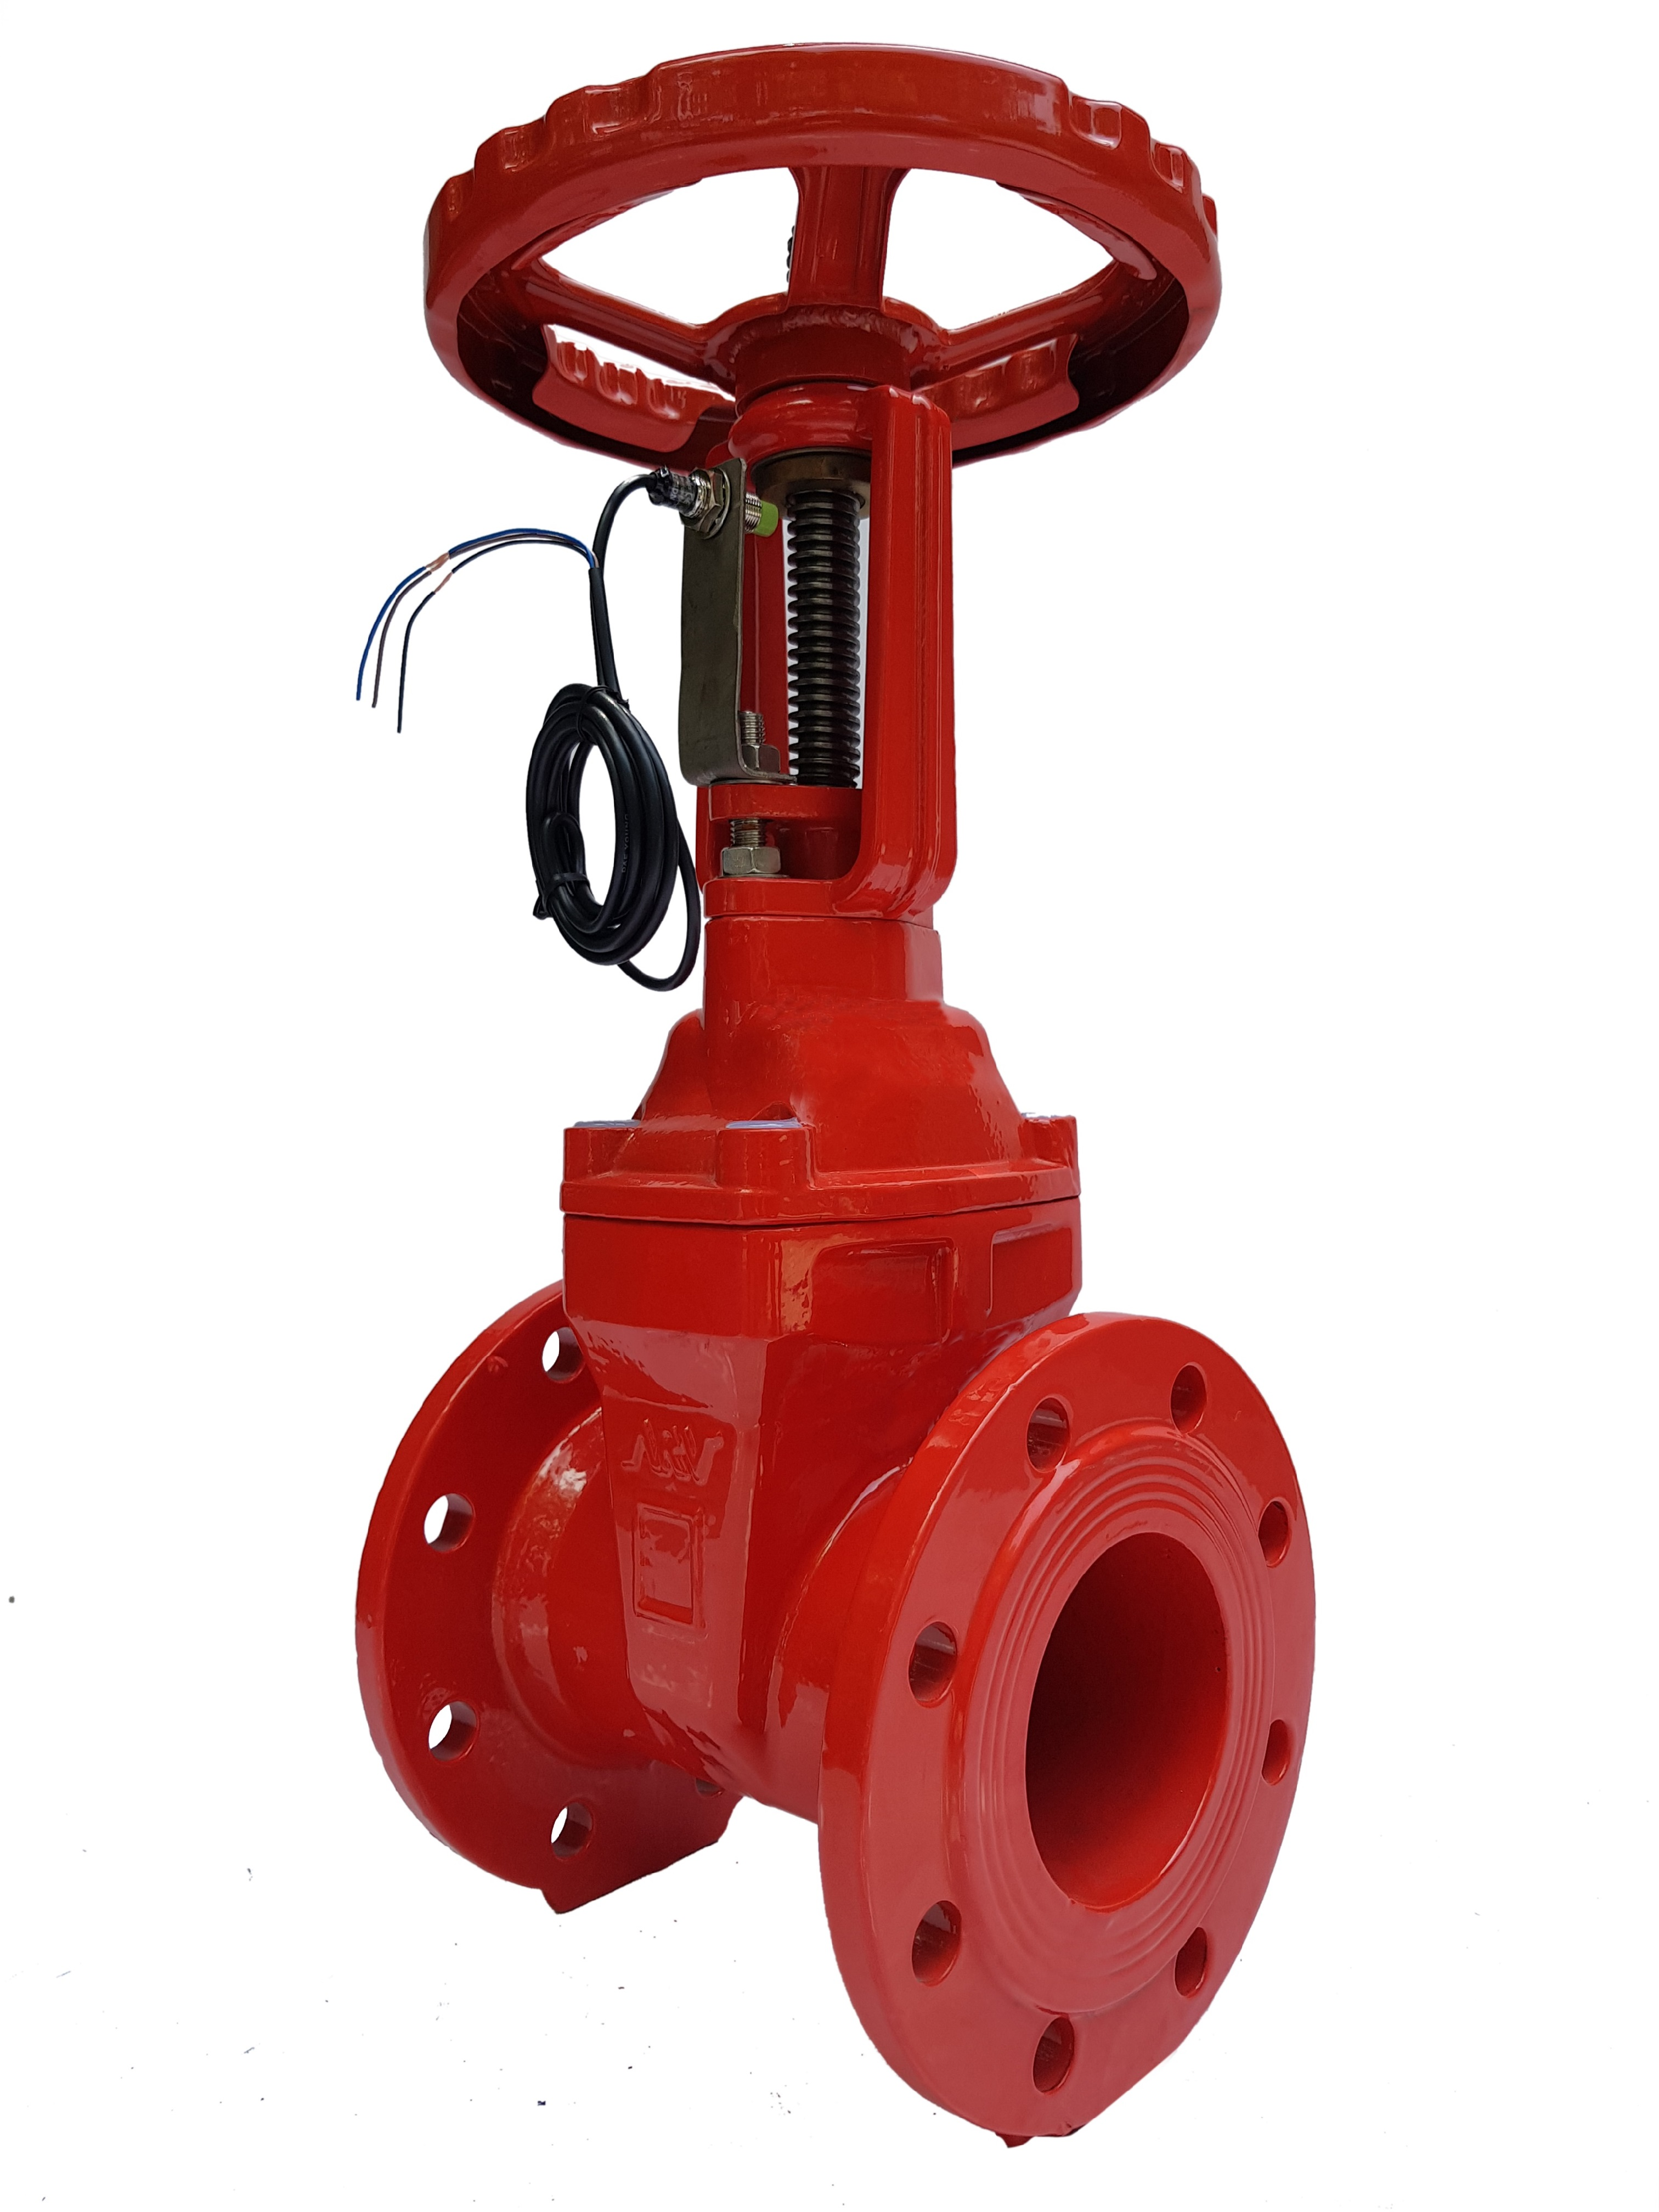 OS&Y GATE VALVE WITH SIGNAL